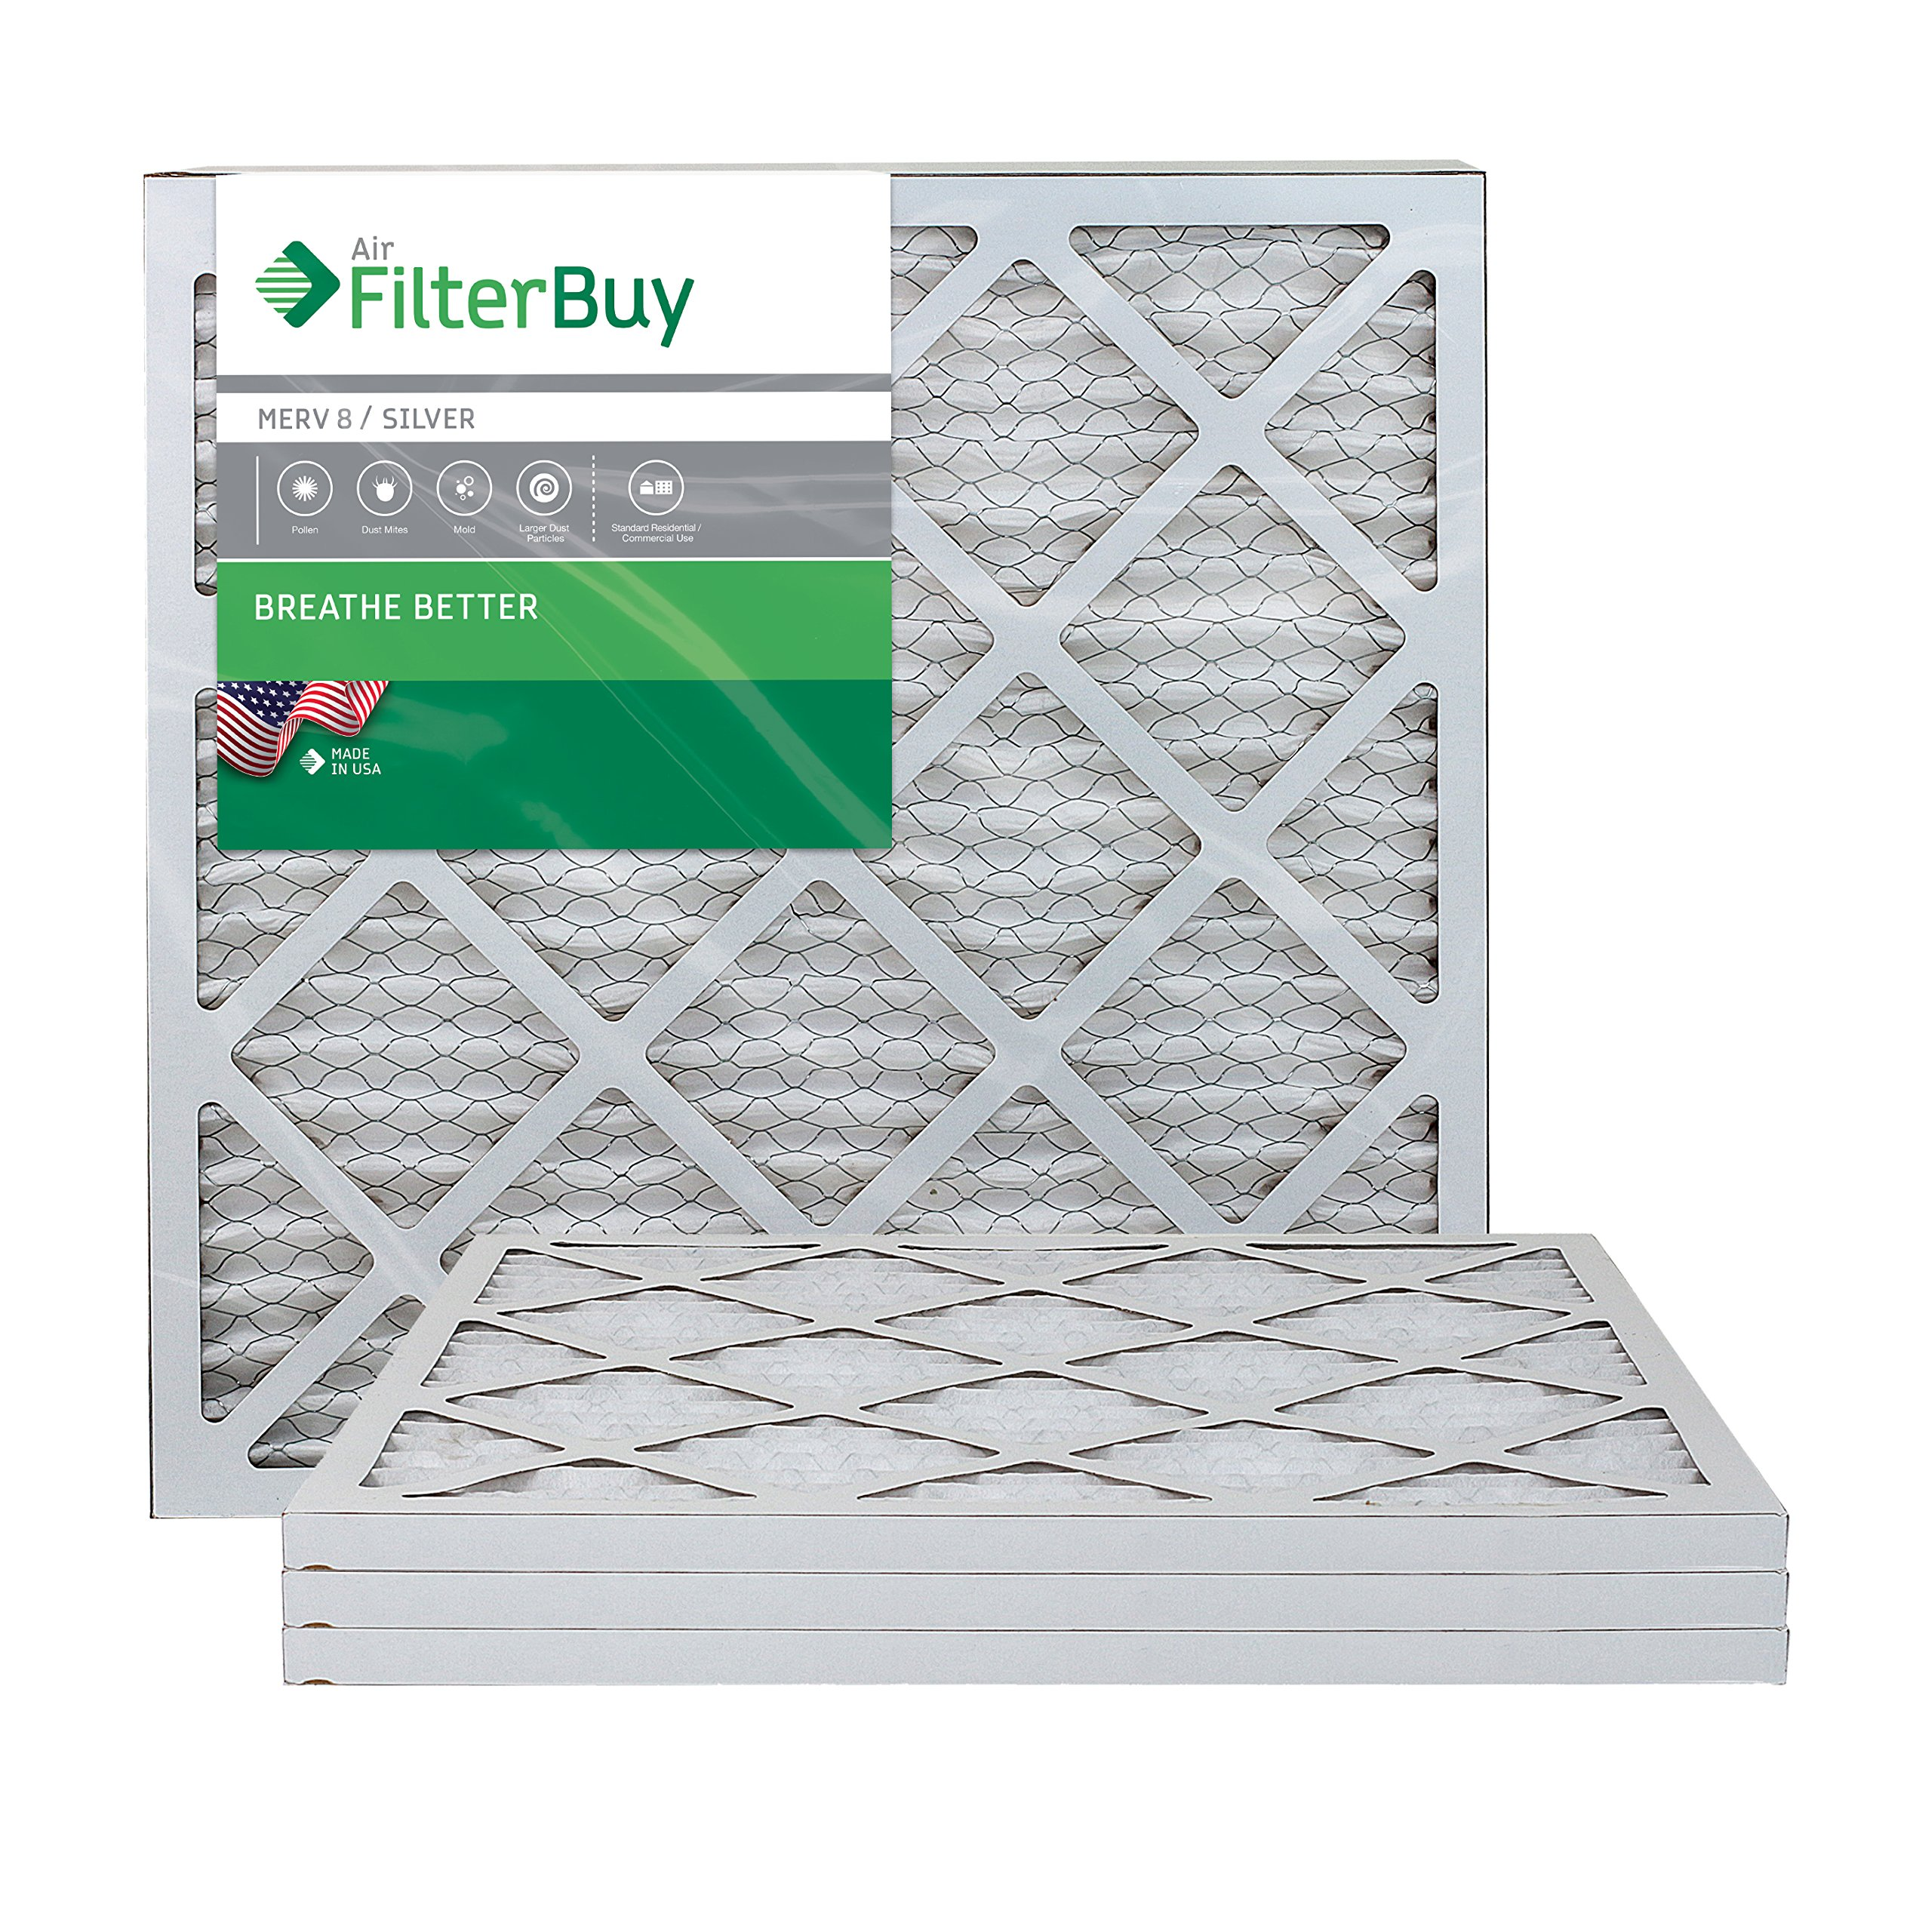 FilterBuy 18x22x1 MERV 8 Pleated AC Furnace Air Filter, (Pack of 4 Filters), 18x22x1 – Silver